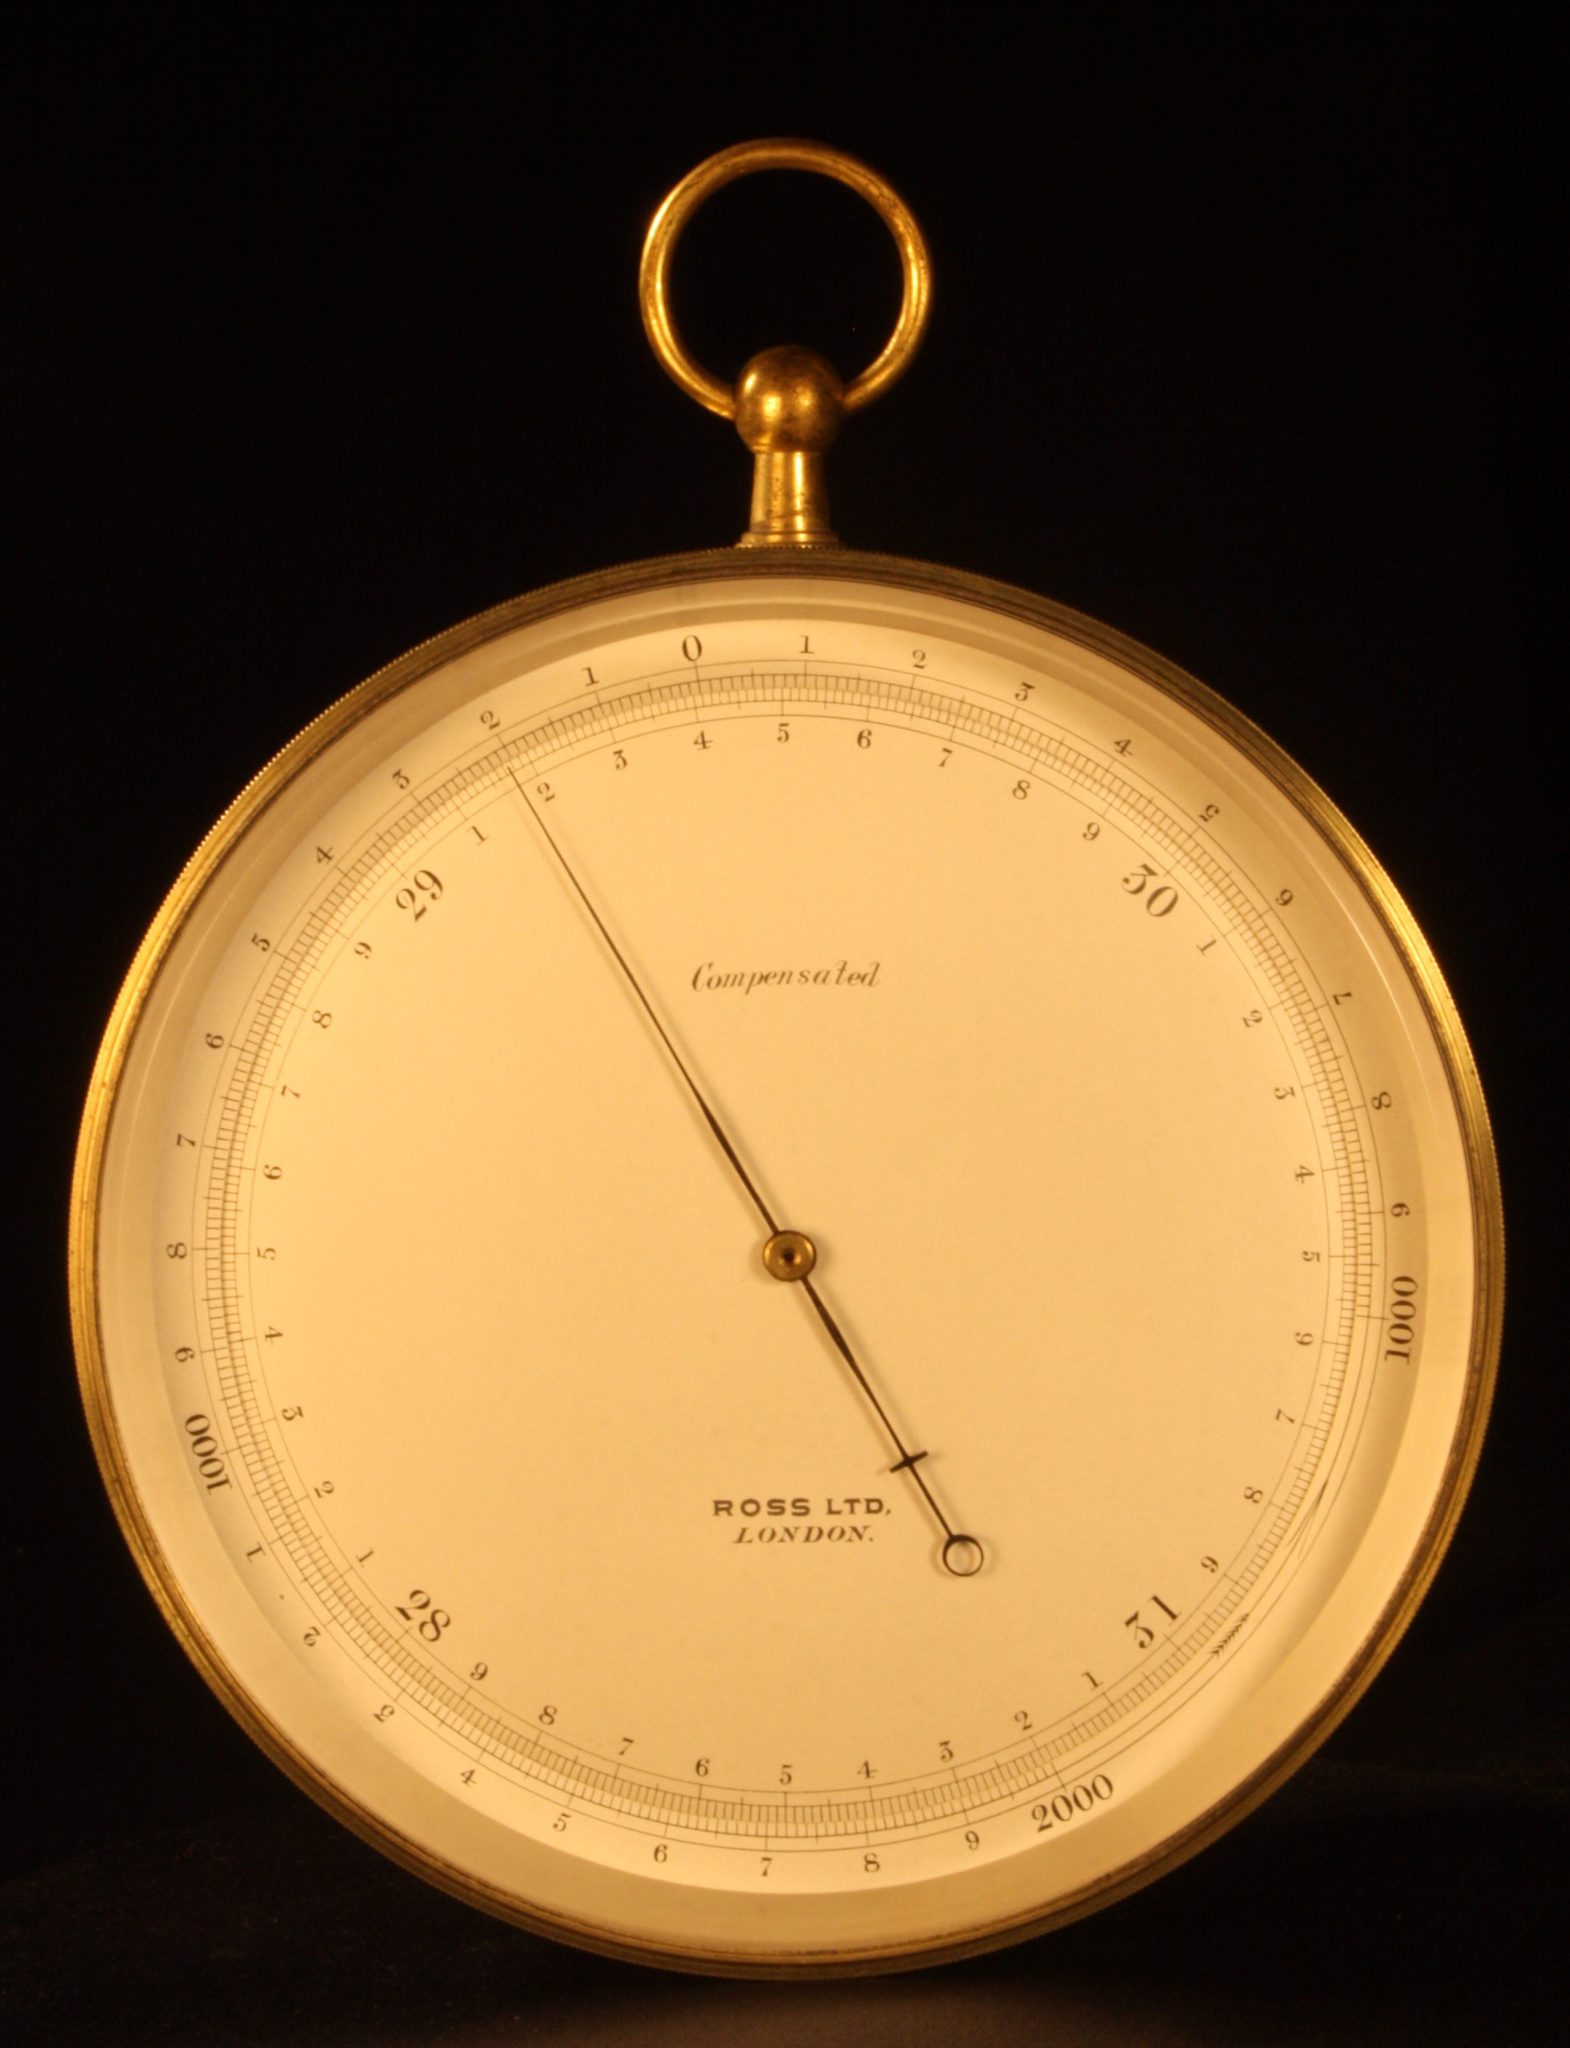 Image of Ross Barometer c1918